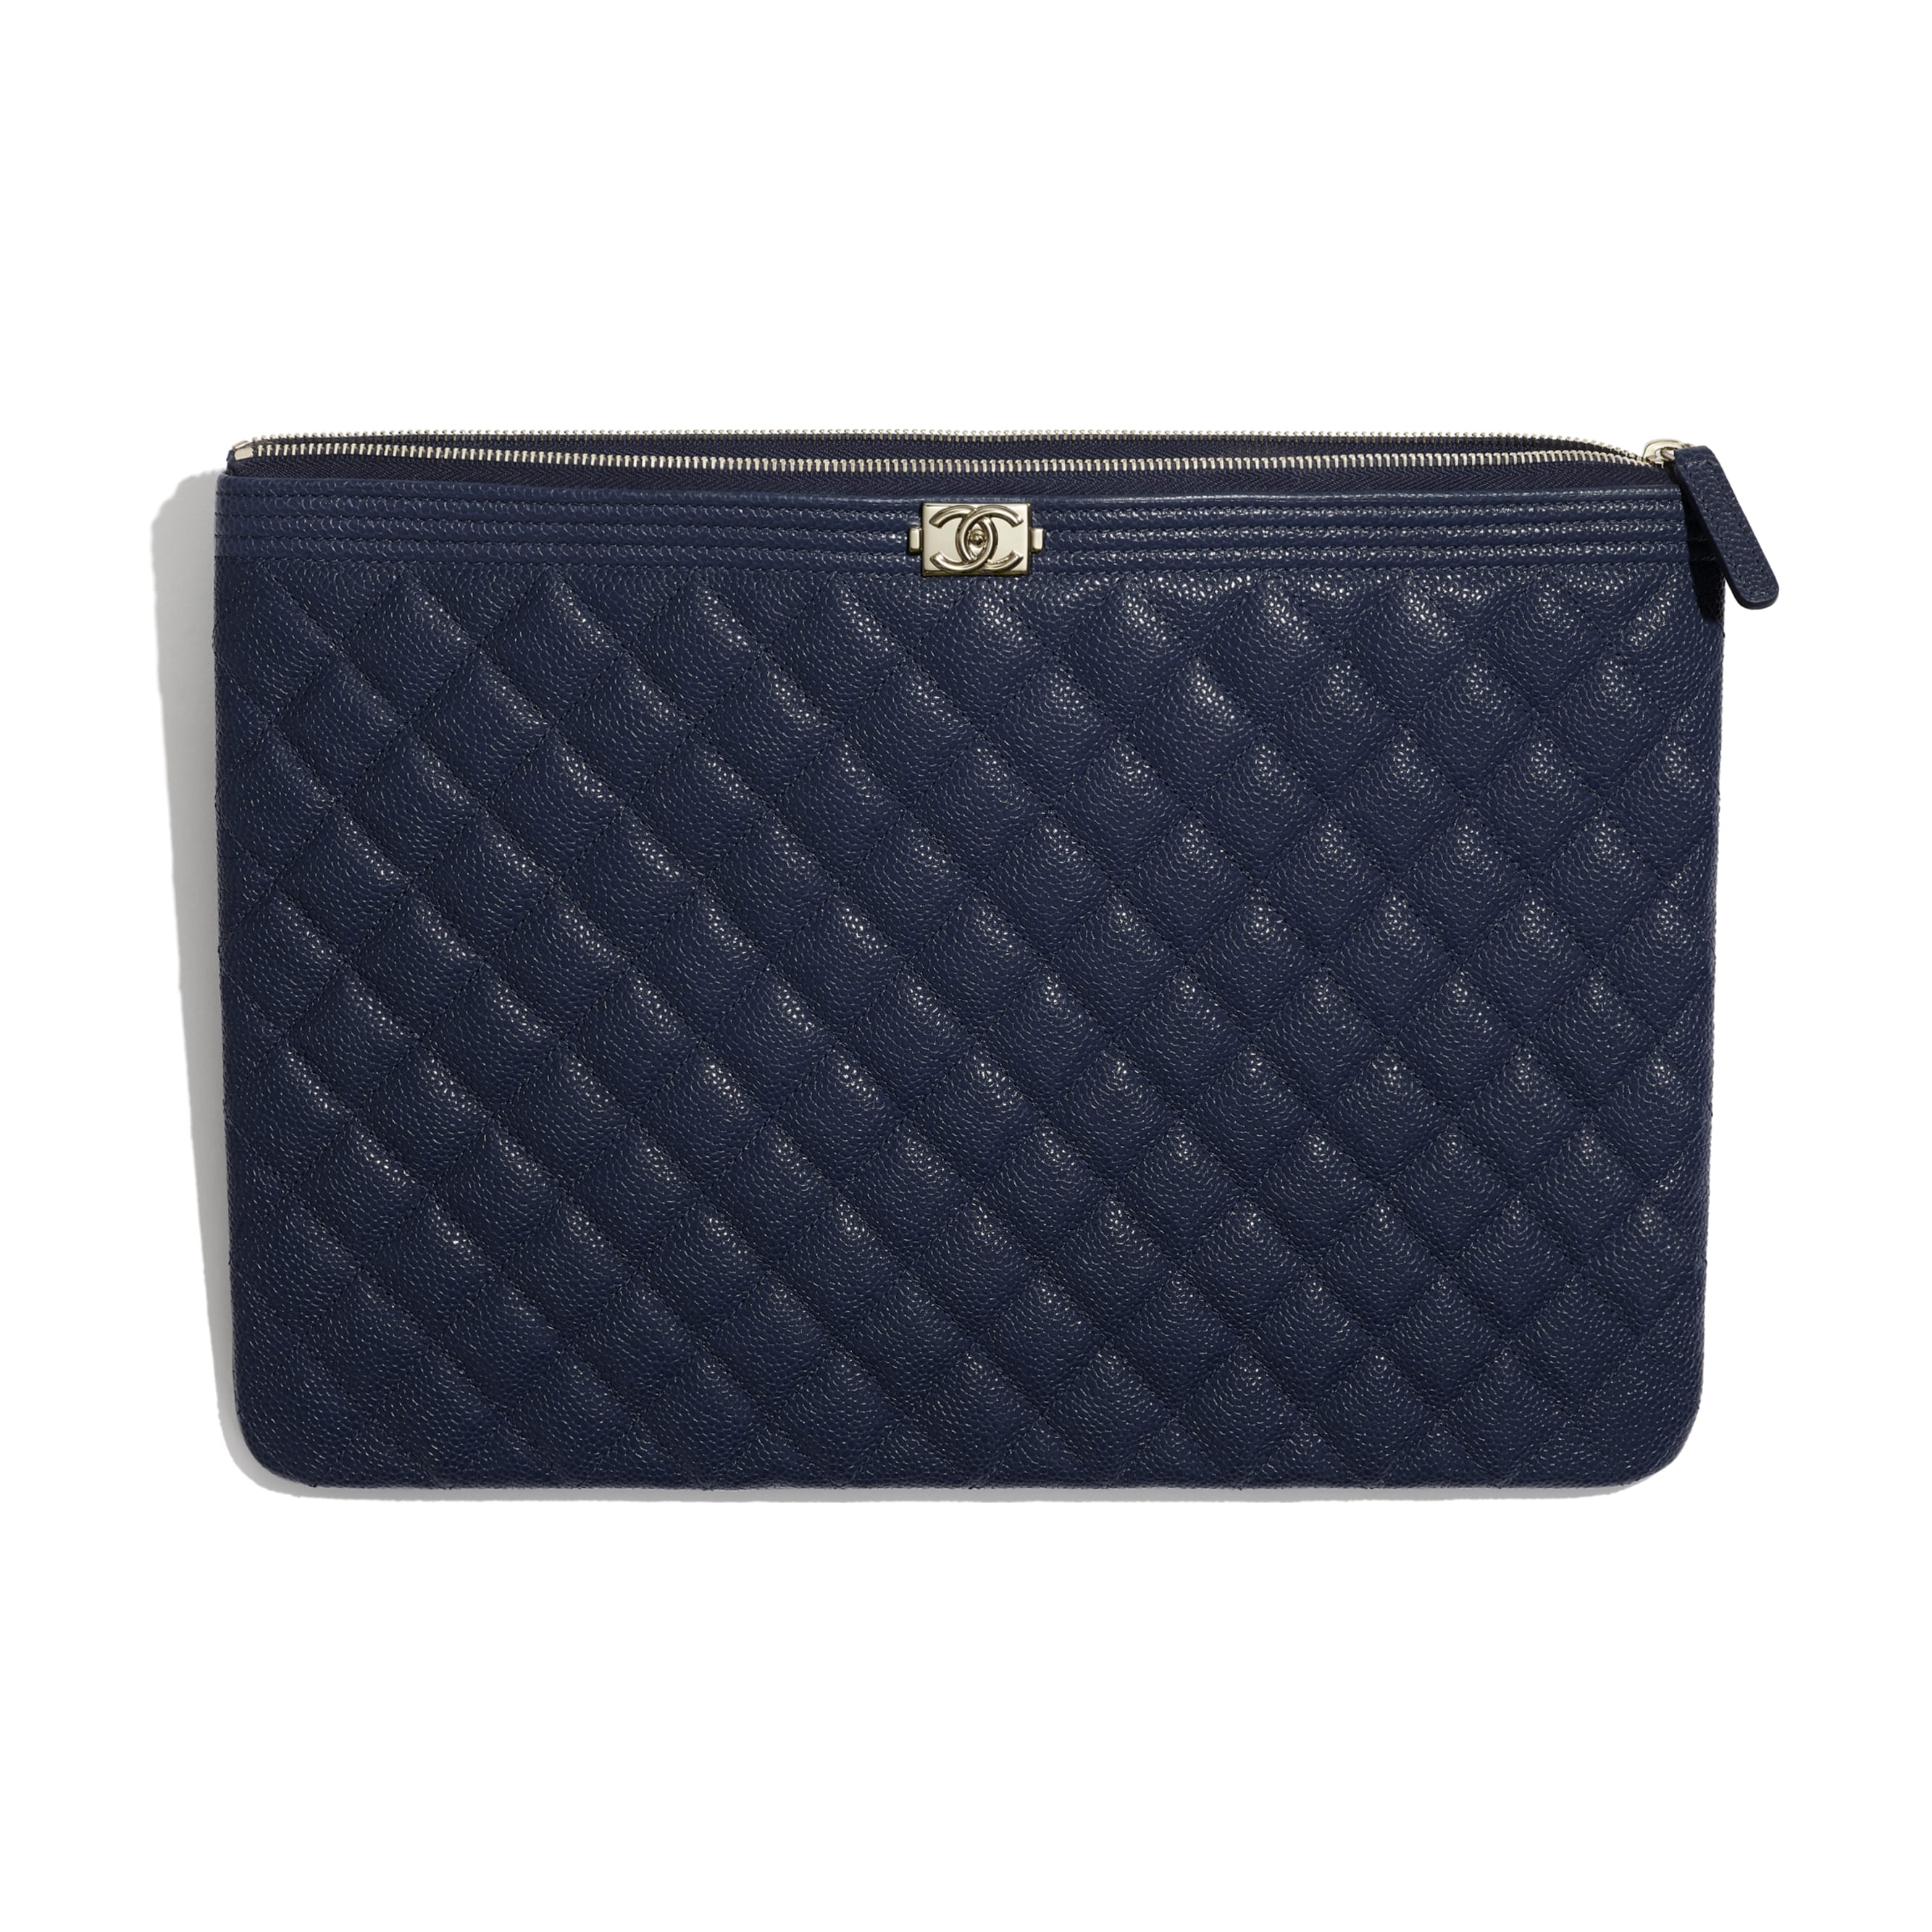 BOY CHANEL Large Pouch - Navy Blue - Grained Shiny Calfskin & Gold-Tone Metal - Other view - see standard sized version